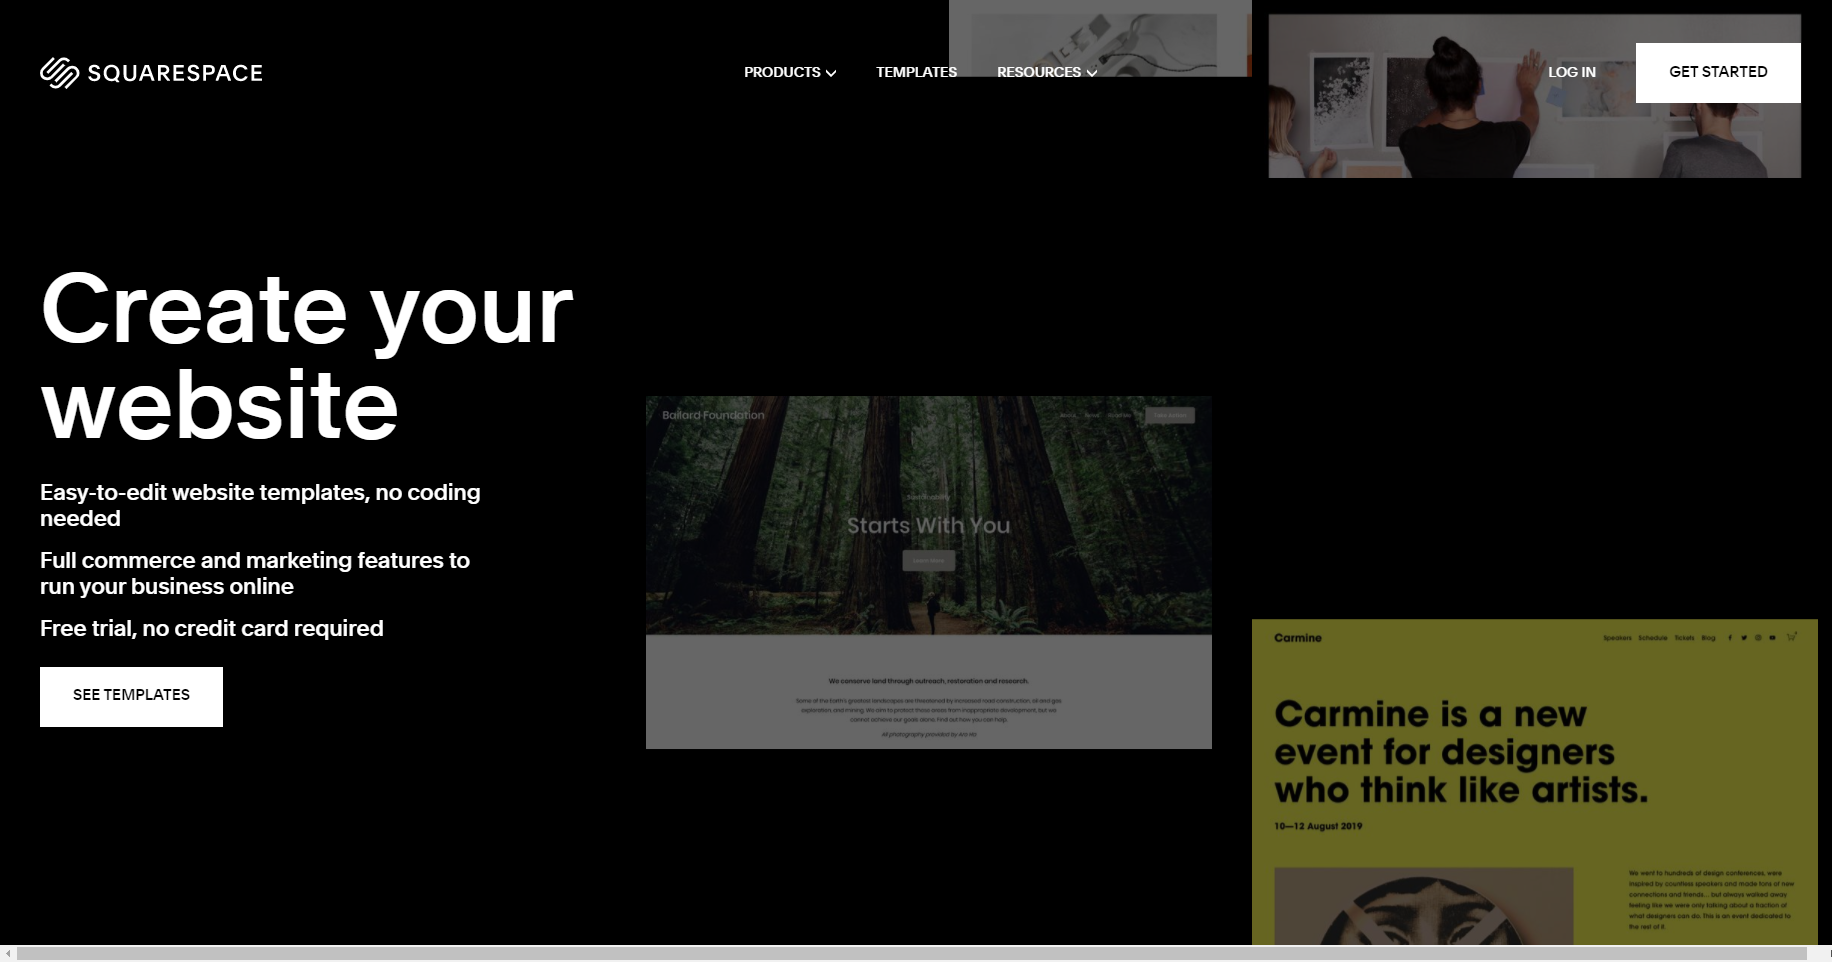 eCommerce software and marketing square screenshot